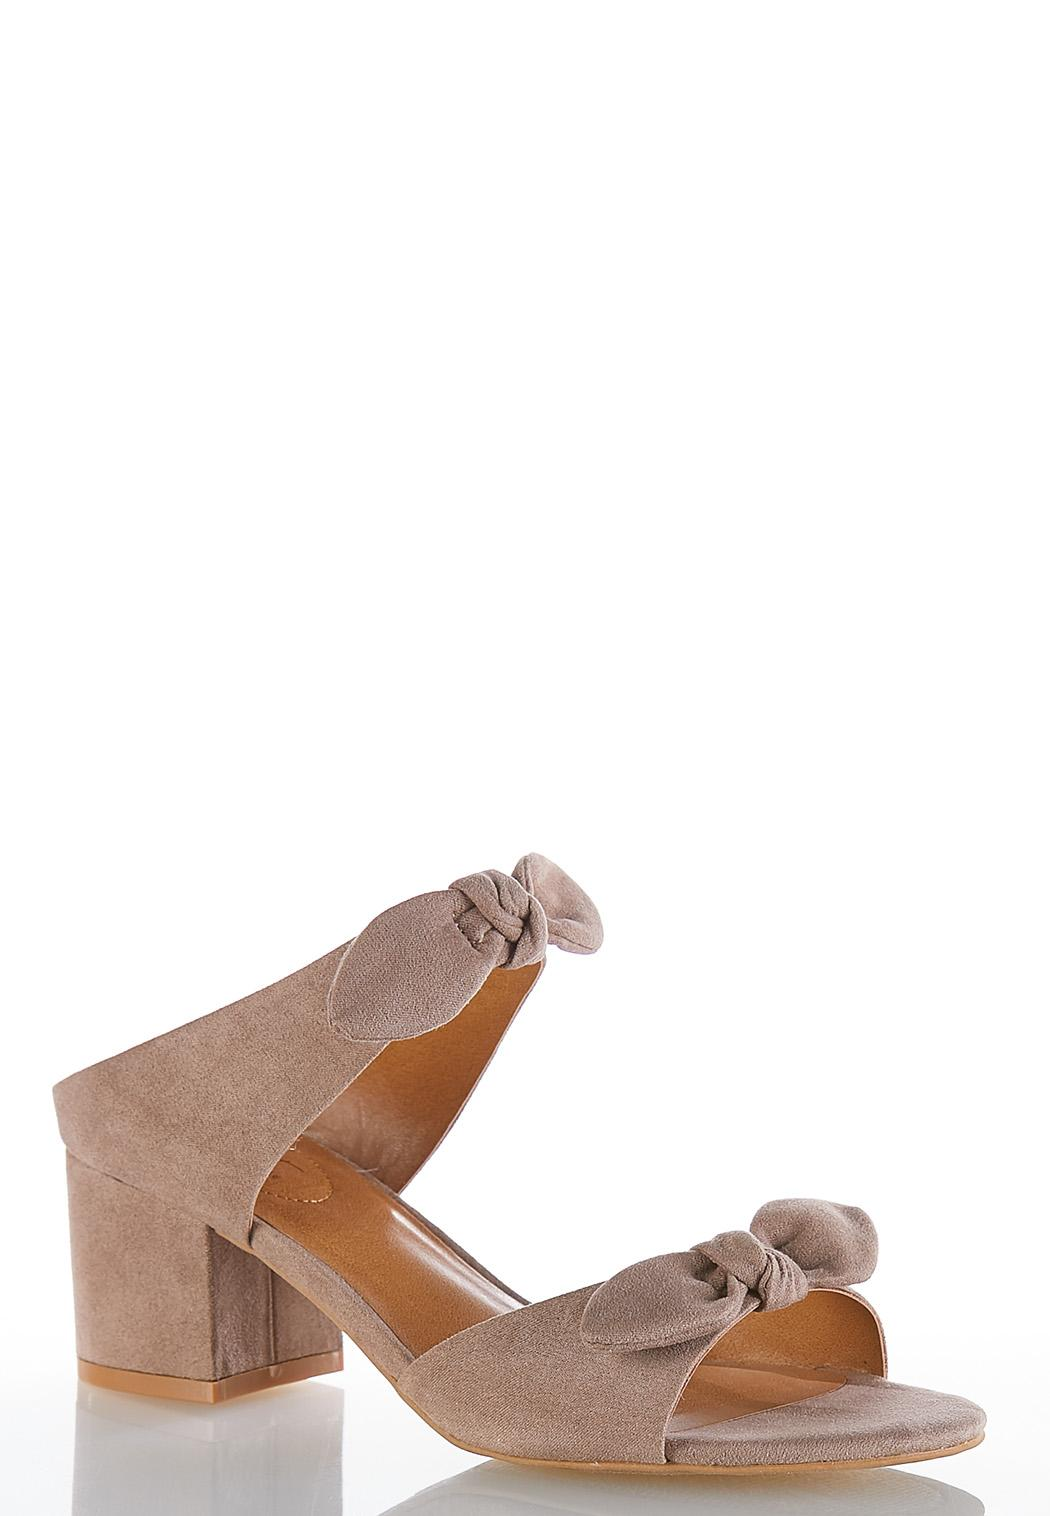 b2d06223ac0 Faux Suede Bow Mules Heels Cato Fashions